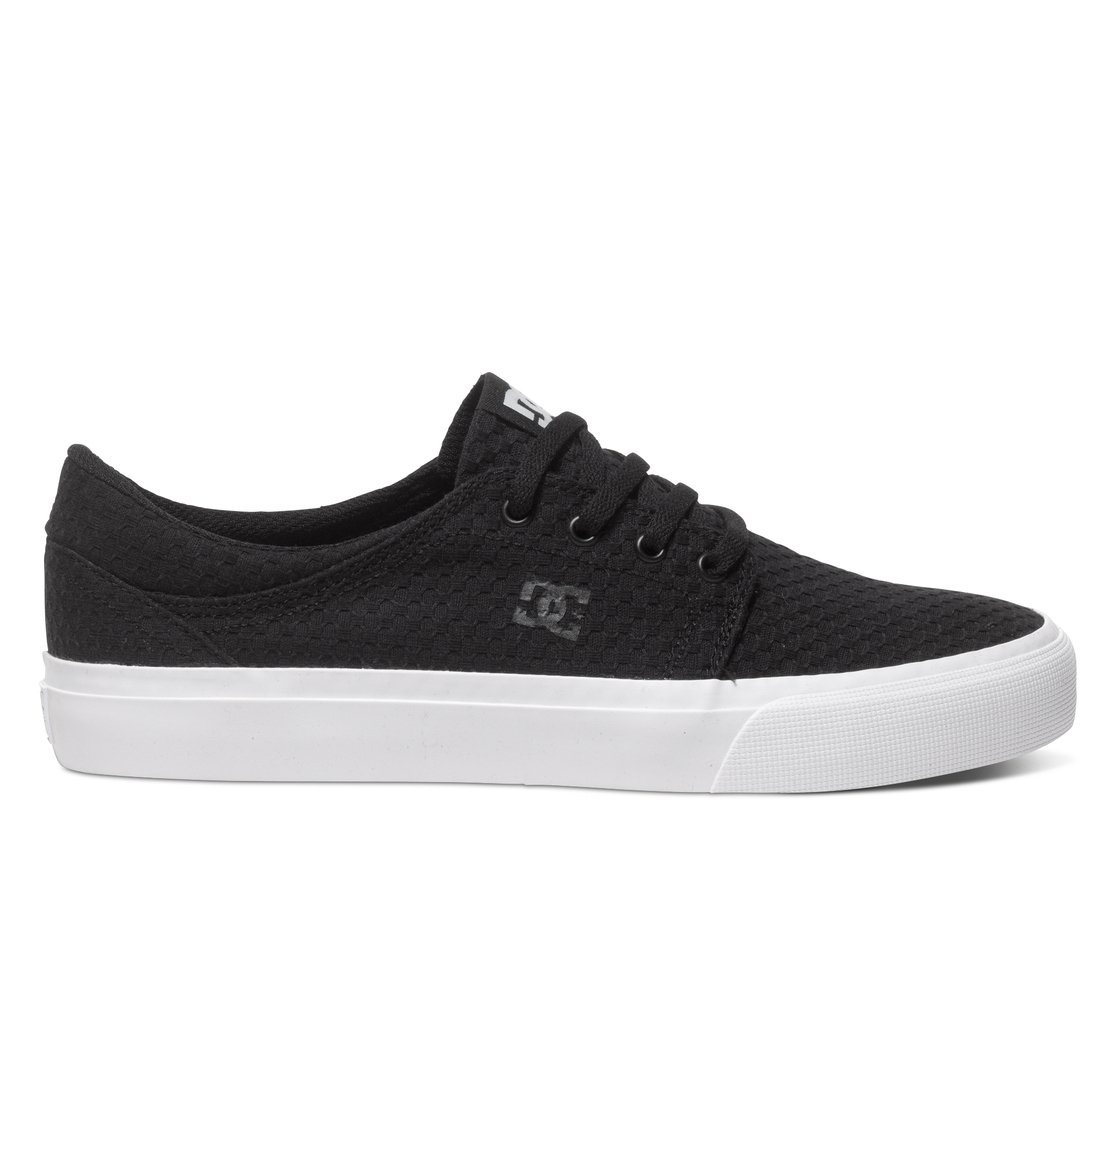 Grille Taille Dc Shoes